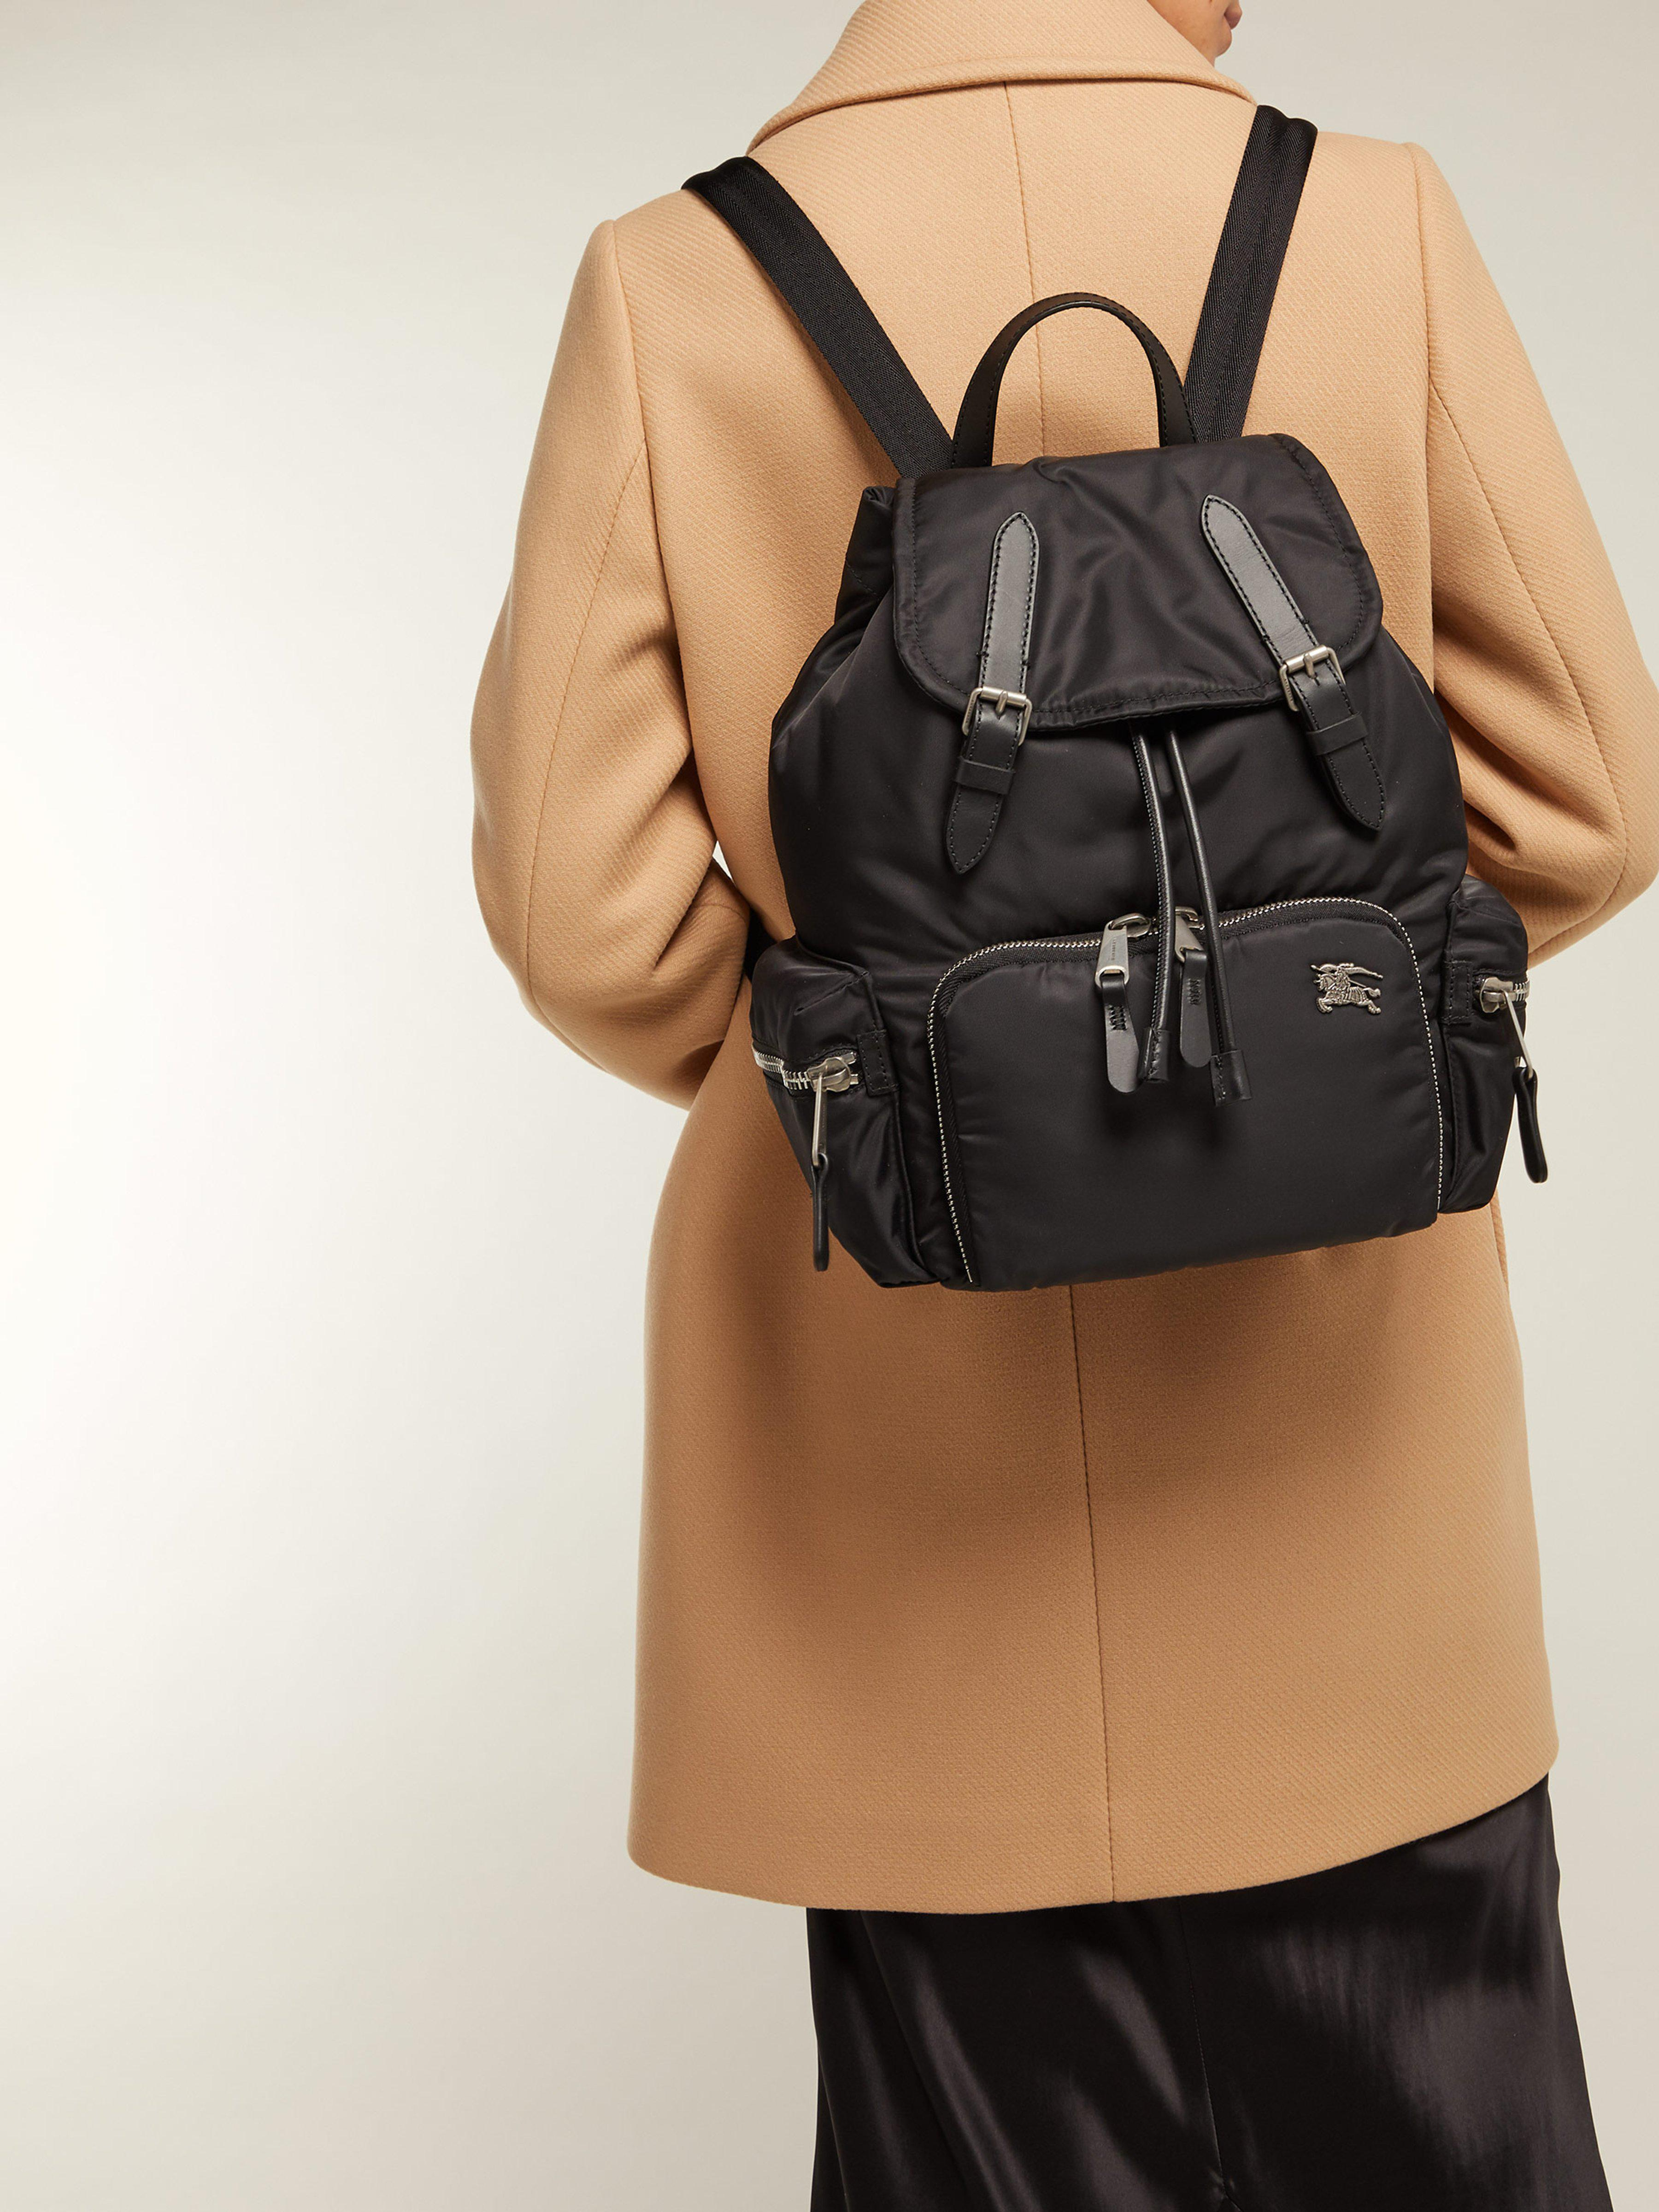 71af52d21261 Burberry Medium Nylon And Leather Backpack in Black - Lyst